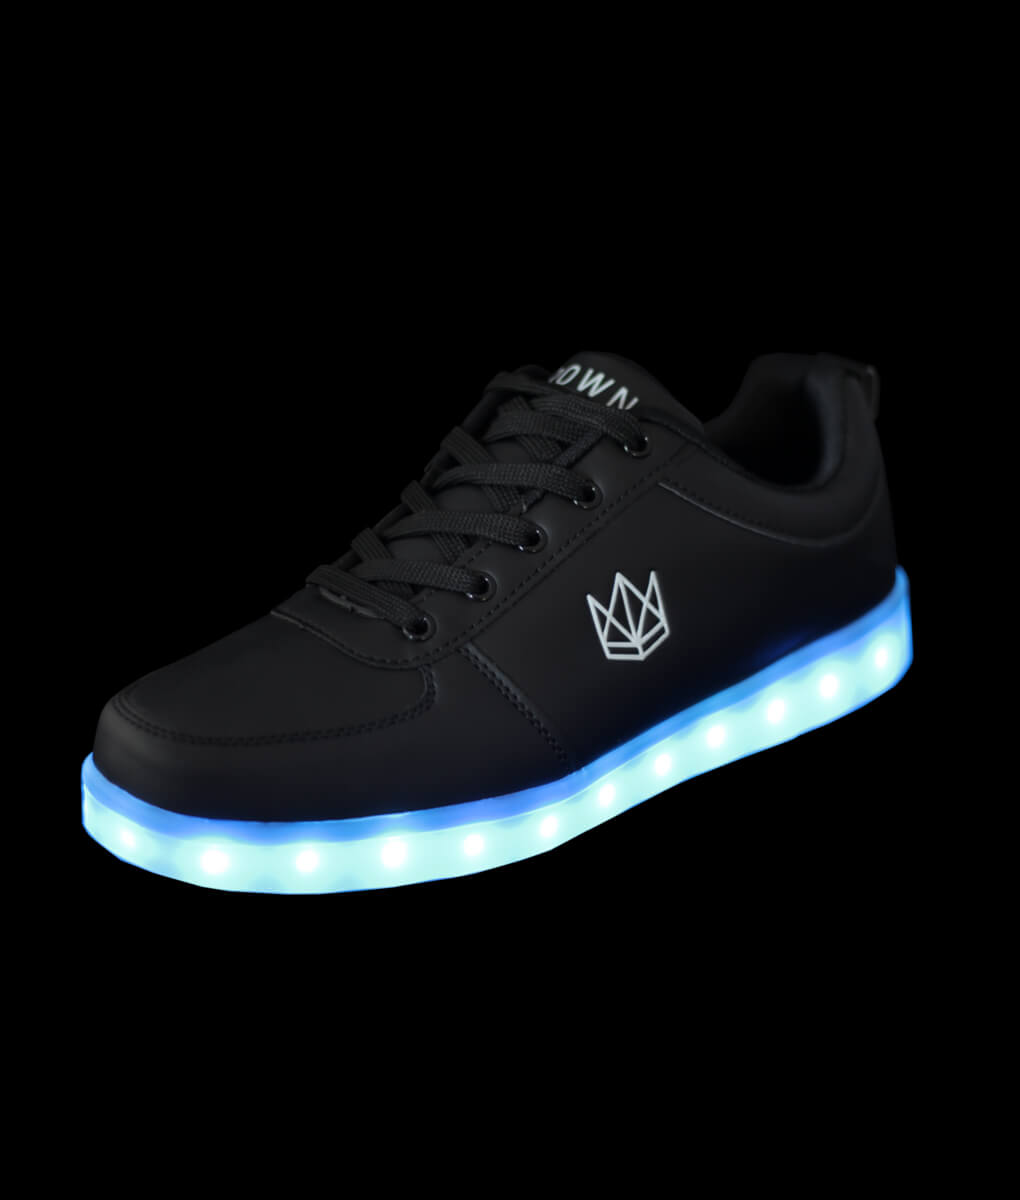 the best attitude 113e2 e4930 CROWN Shoes | Premium Quality LED Schuhe